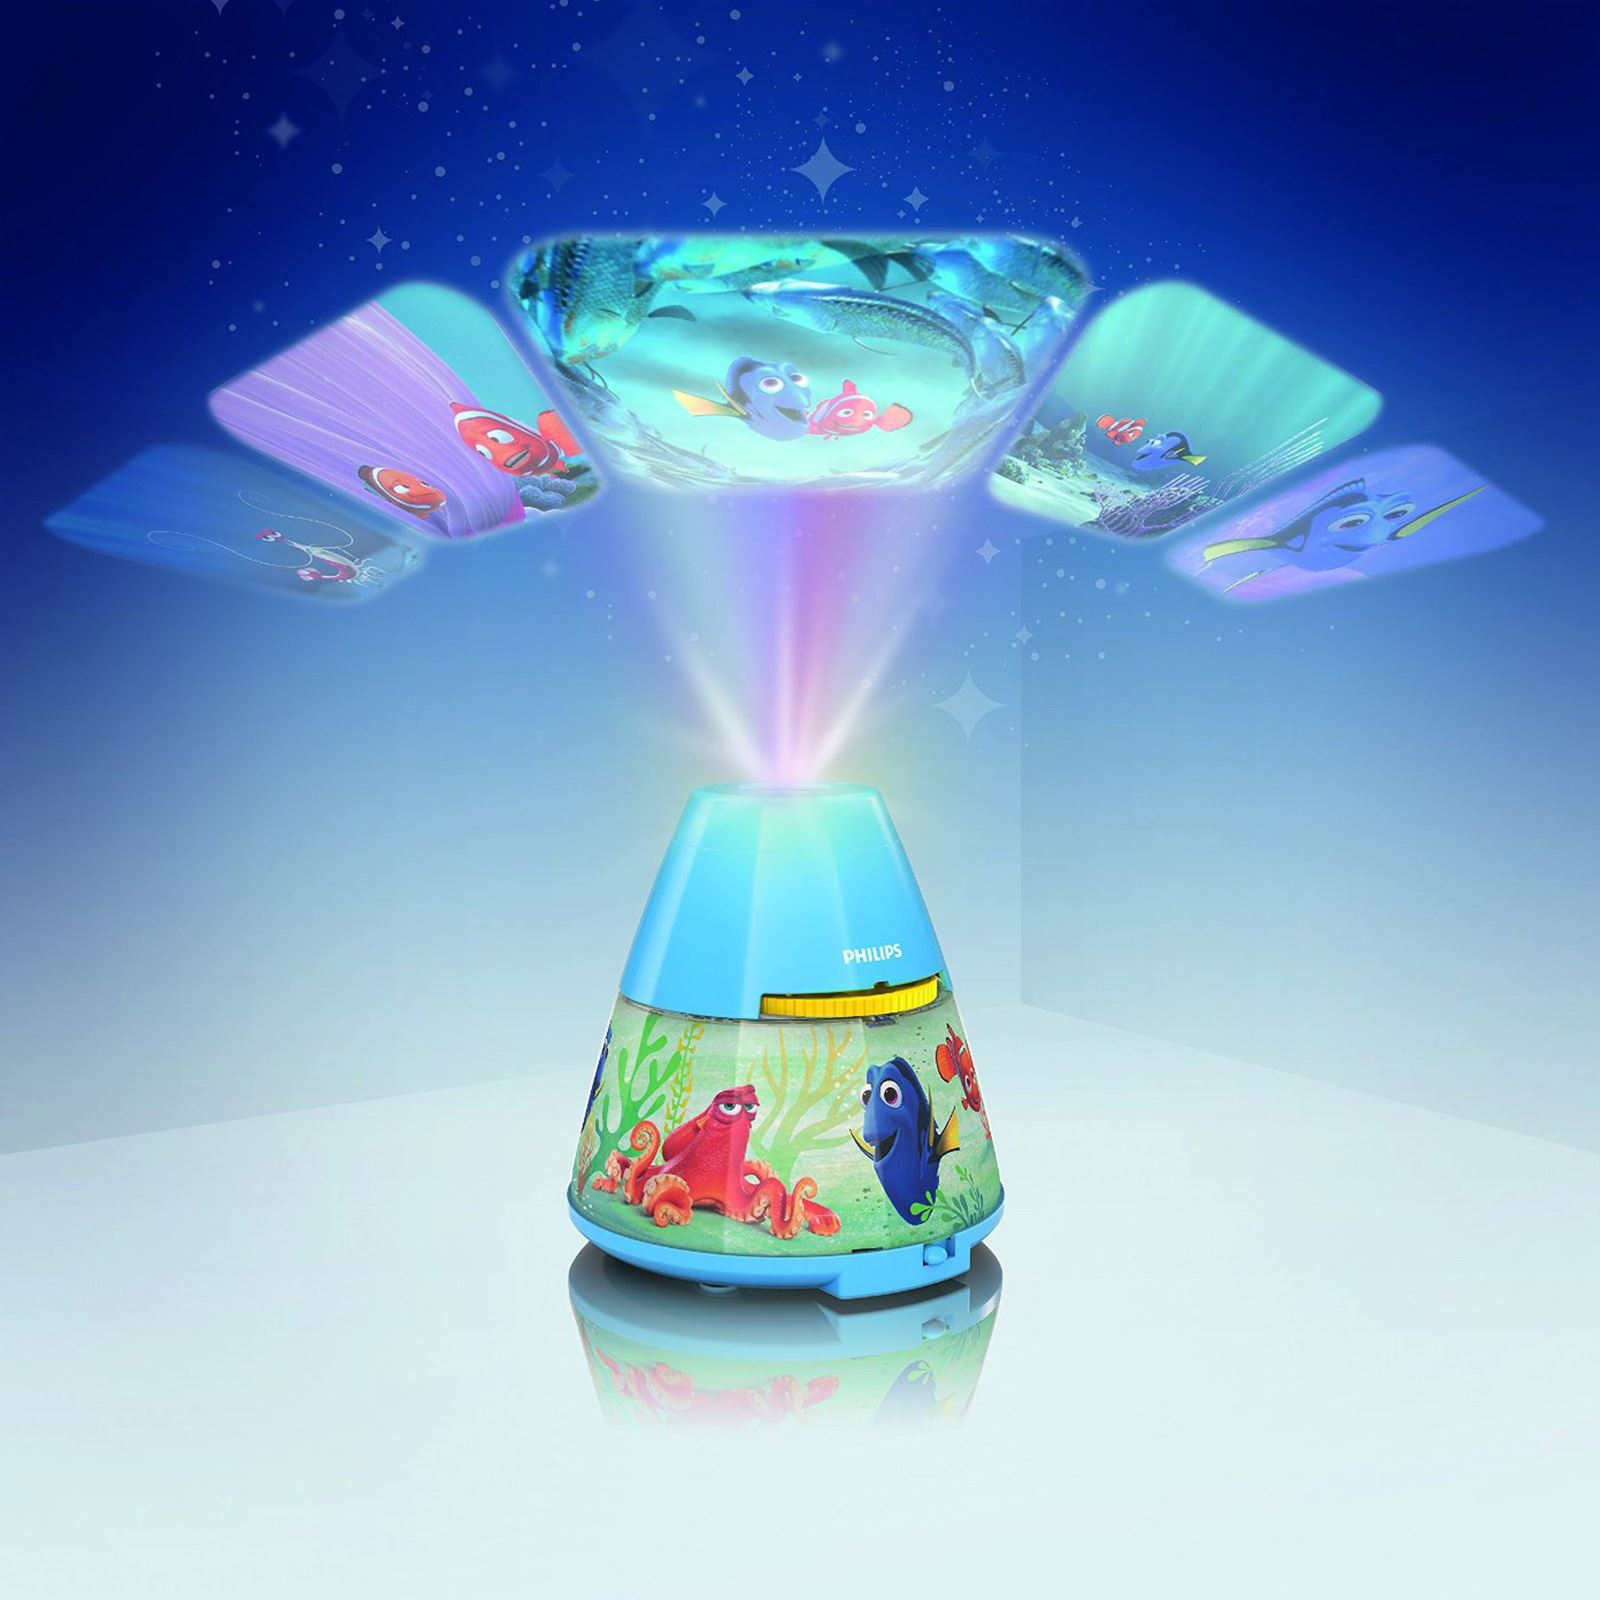 Philips Night Light Projector Finding Dory Star Wars